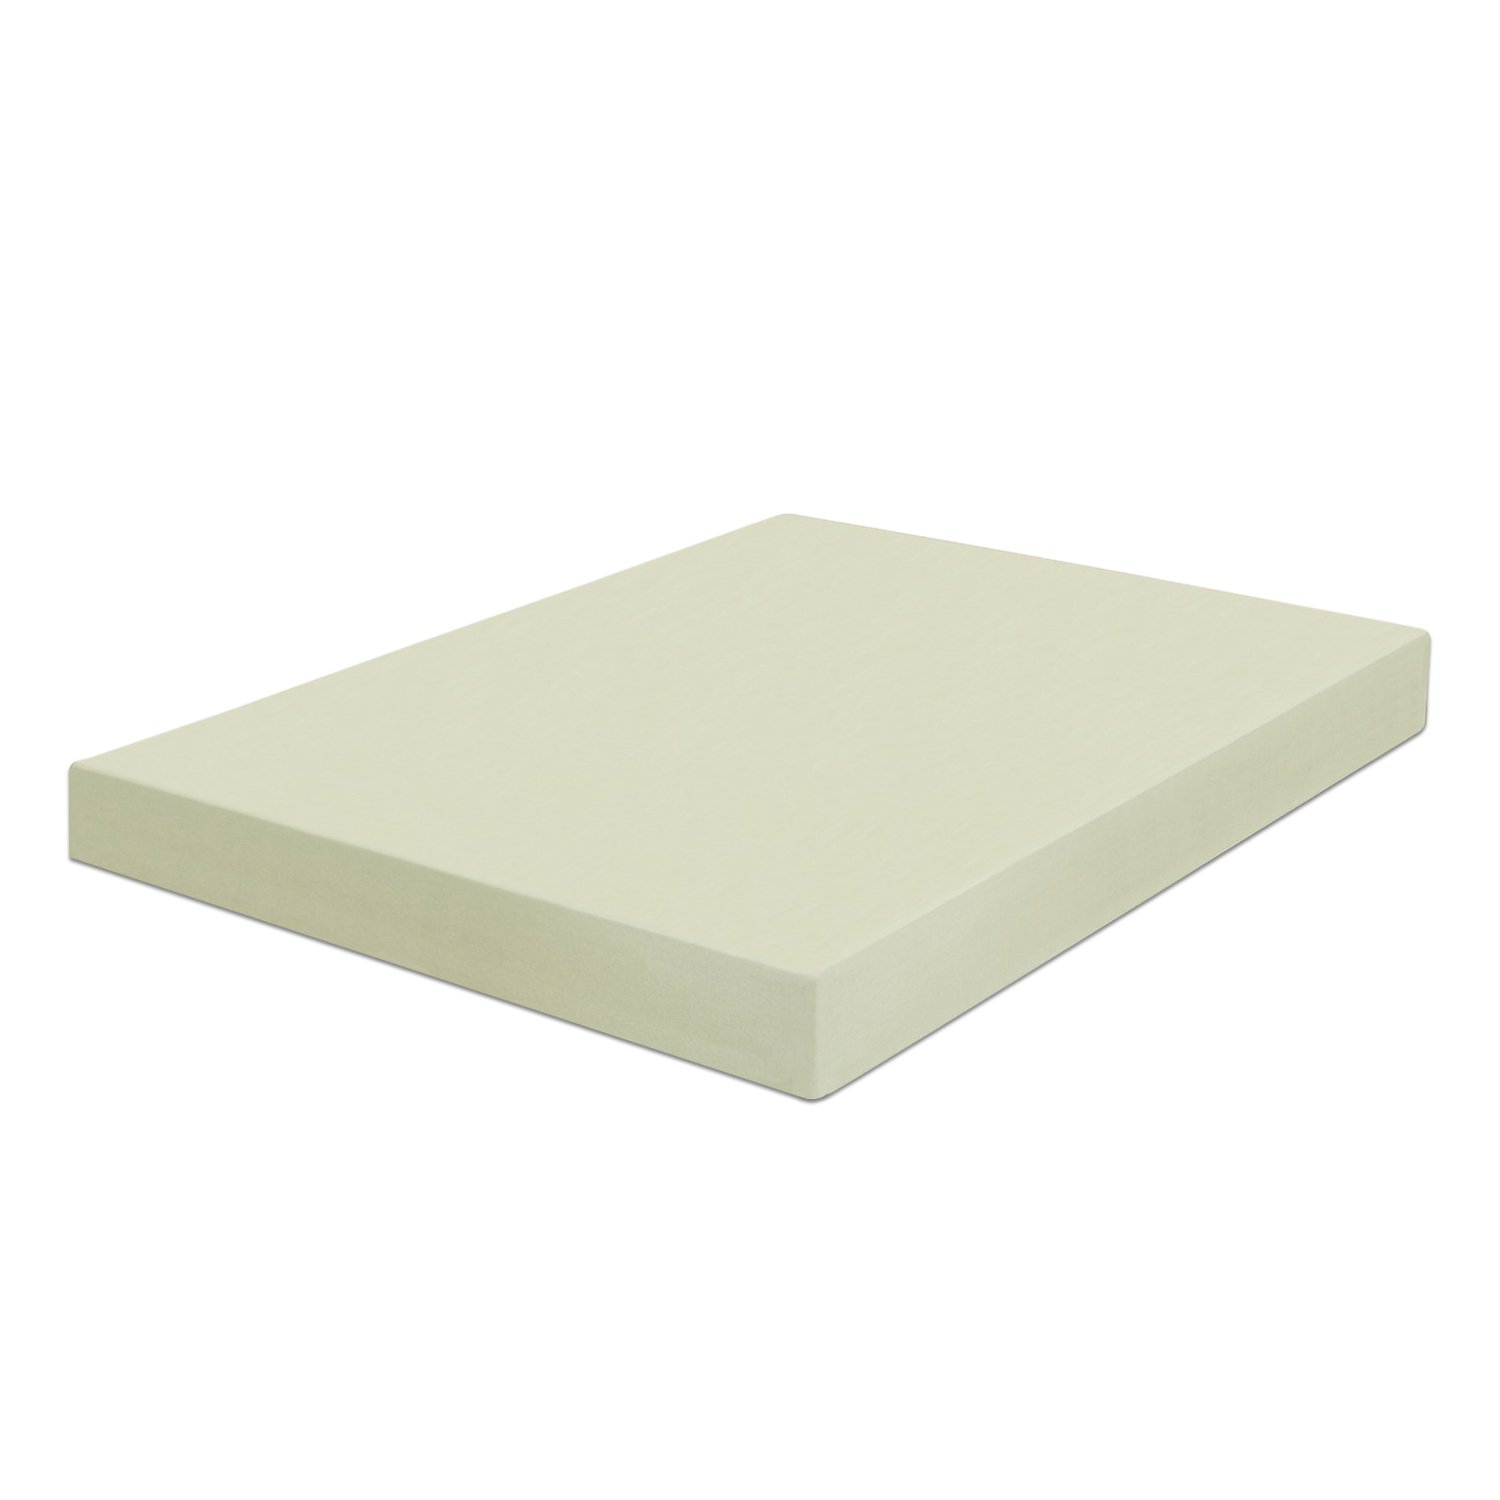 Best Price Mattress 6-Inch Memory Foam Mattress, Queen ...